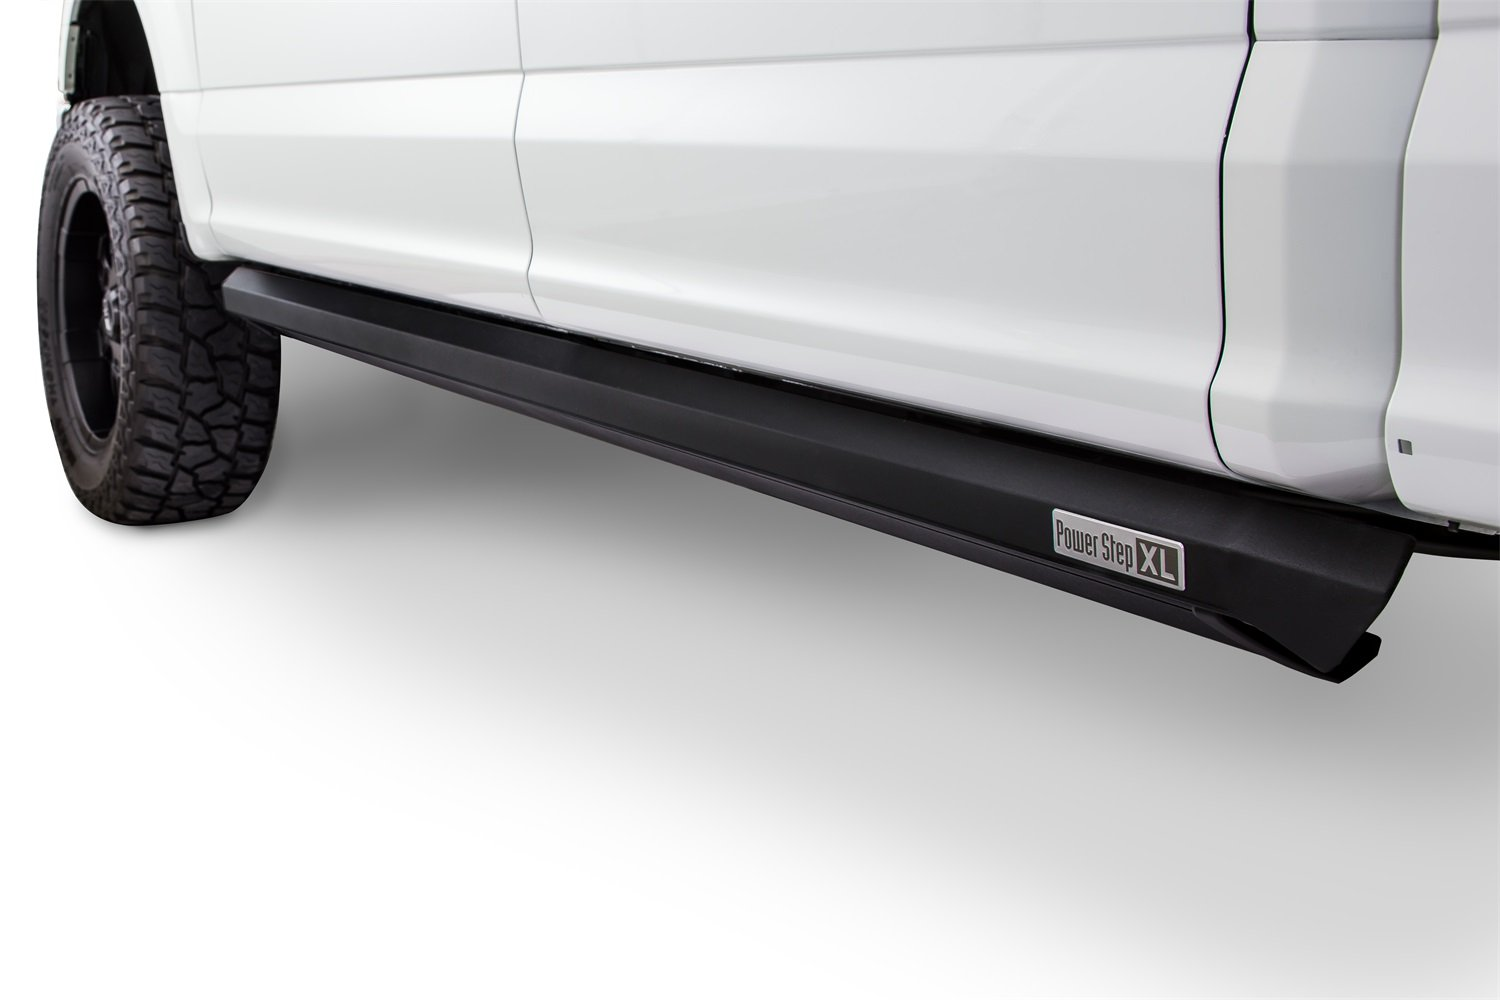 Amazon amp research 77134 01a powerstep xl running boards plug amazon amp research 77134 01a powerstep xl running boards plug n play system automotive sciox Gallery